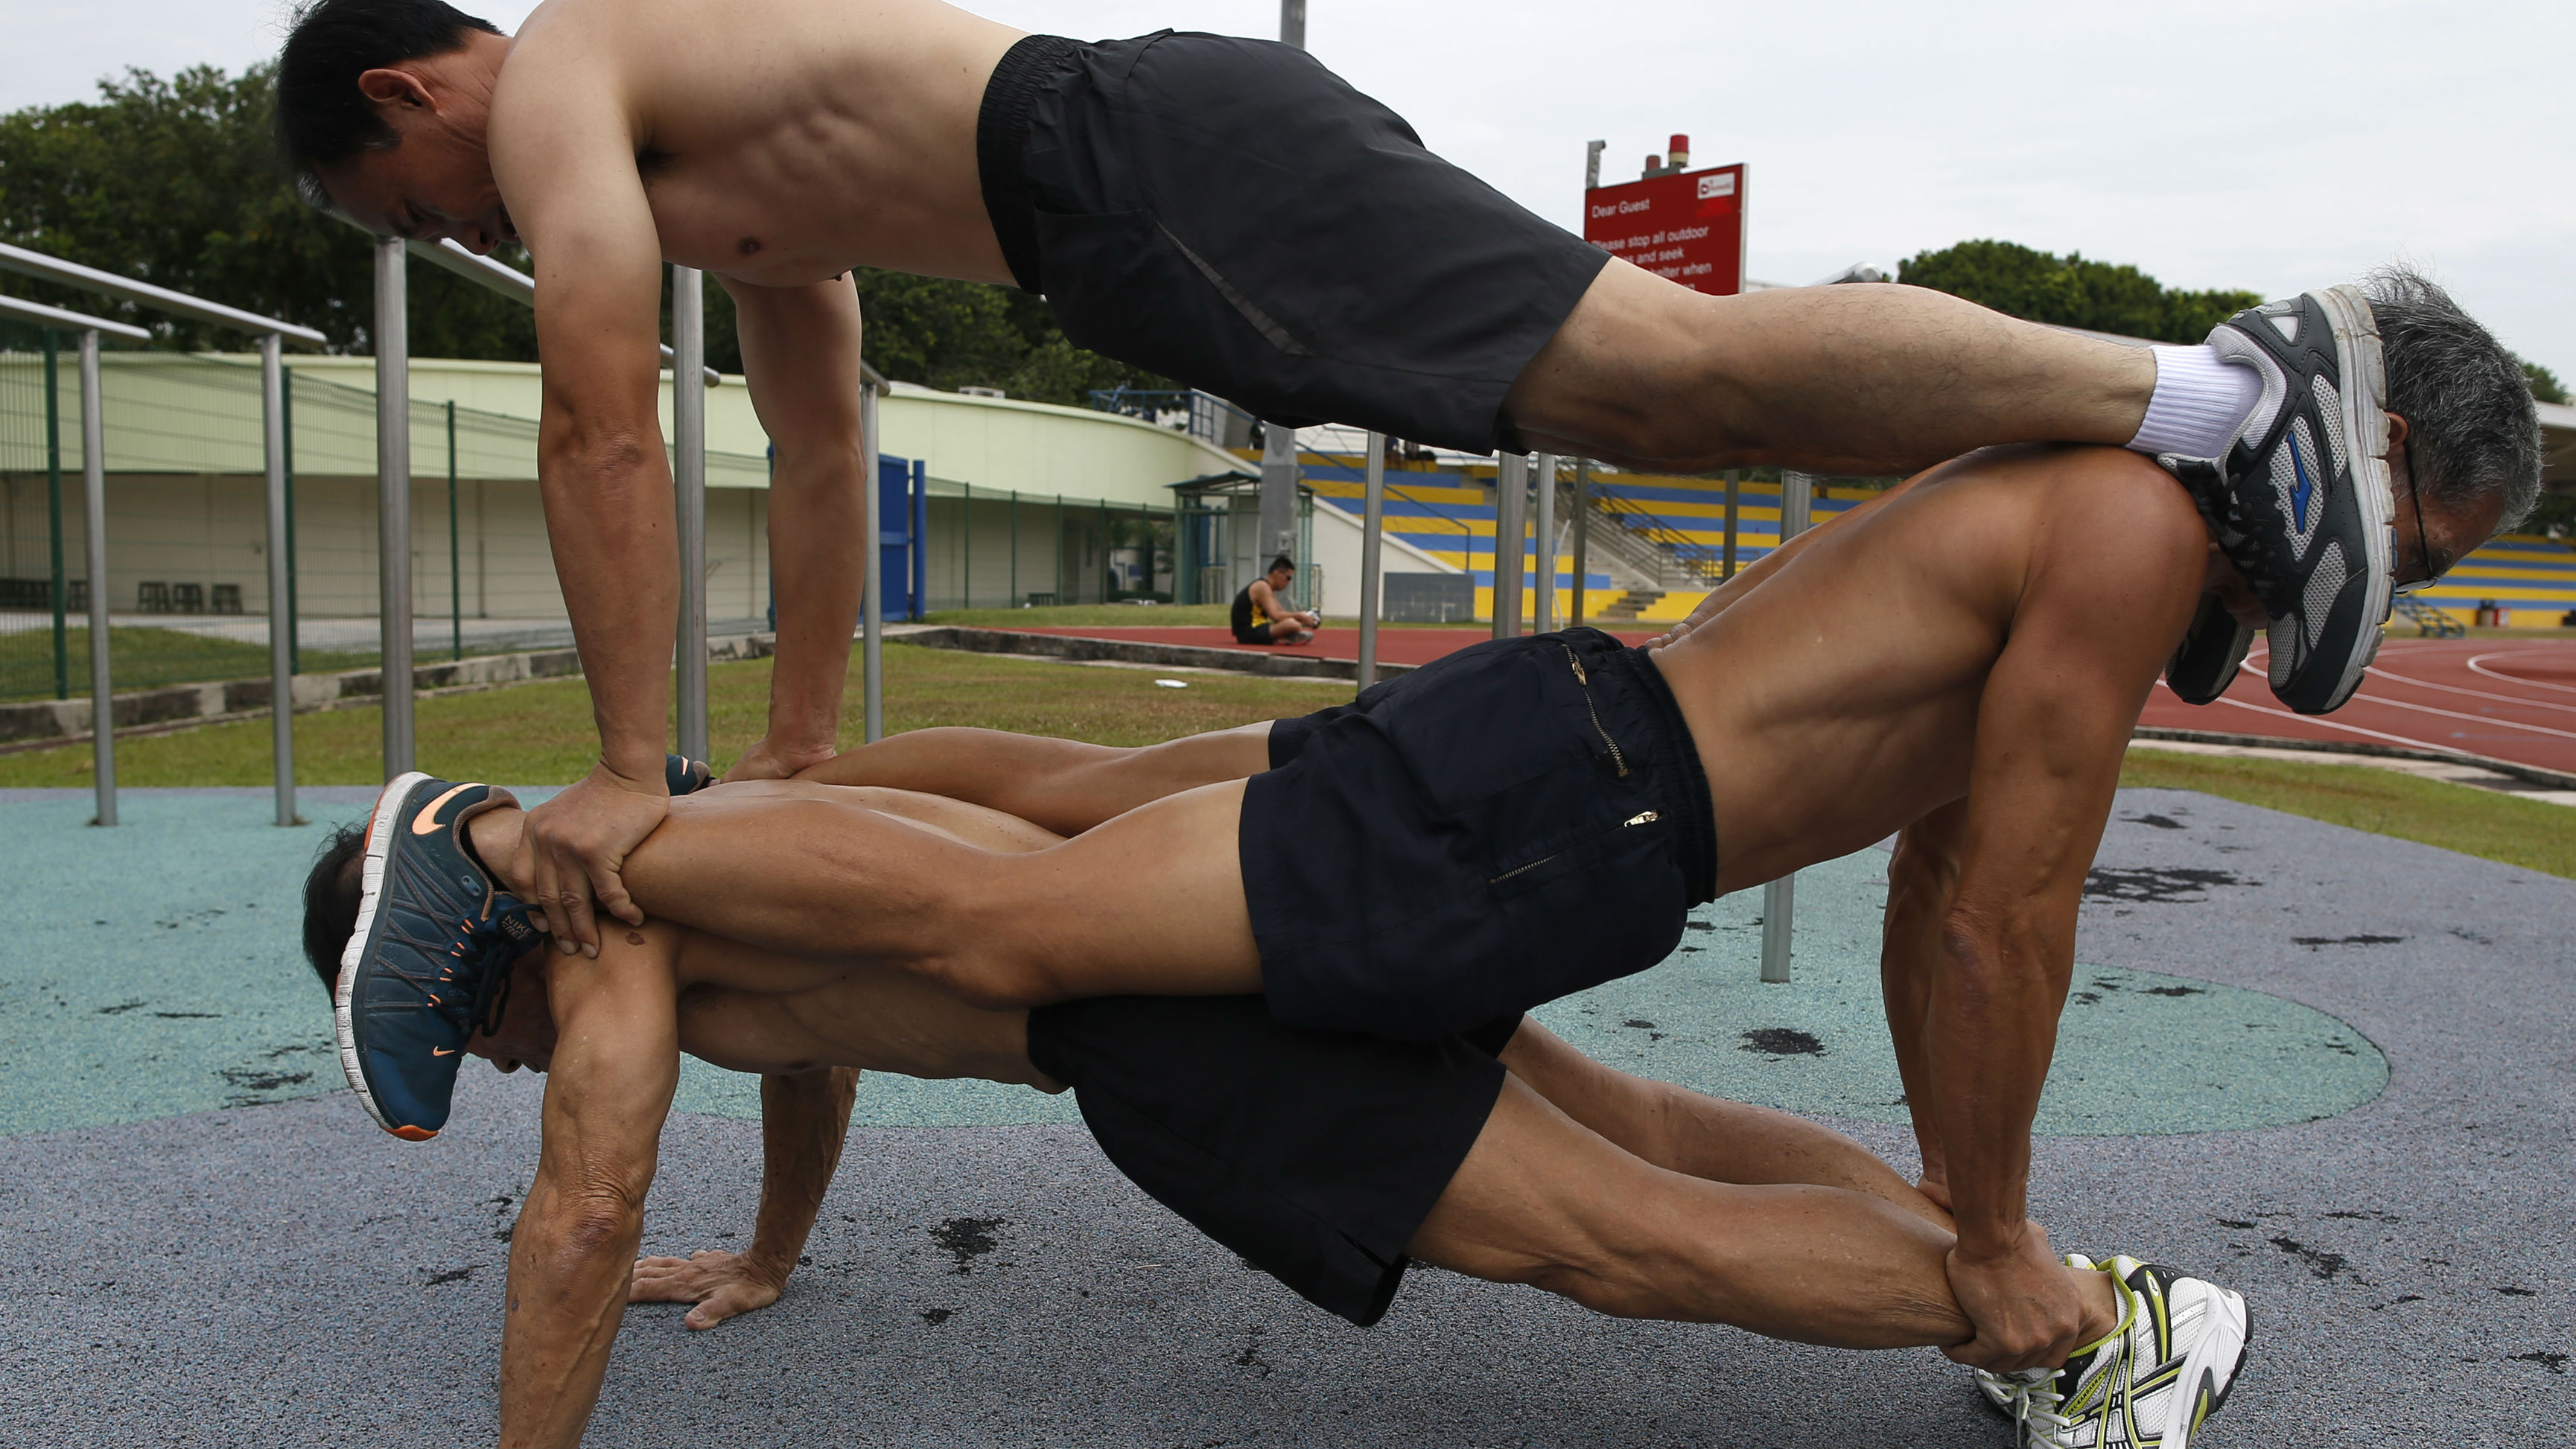 Three men doing plank pushups on each other.